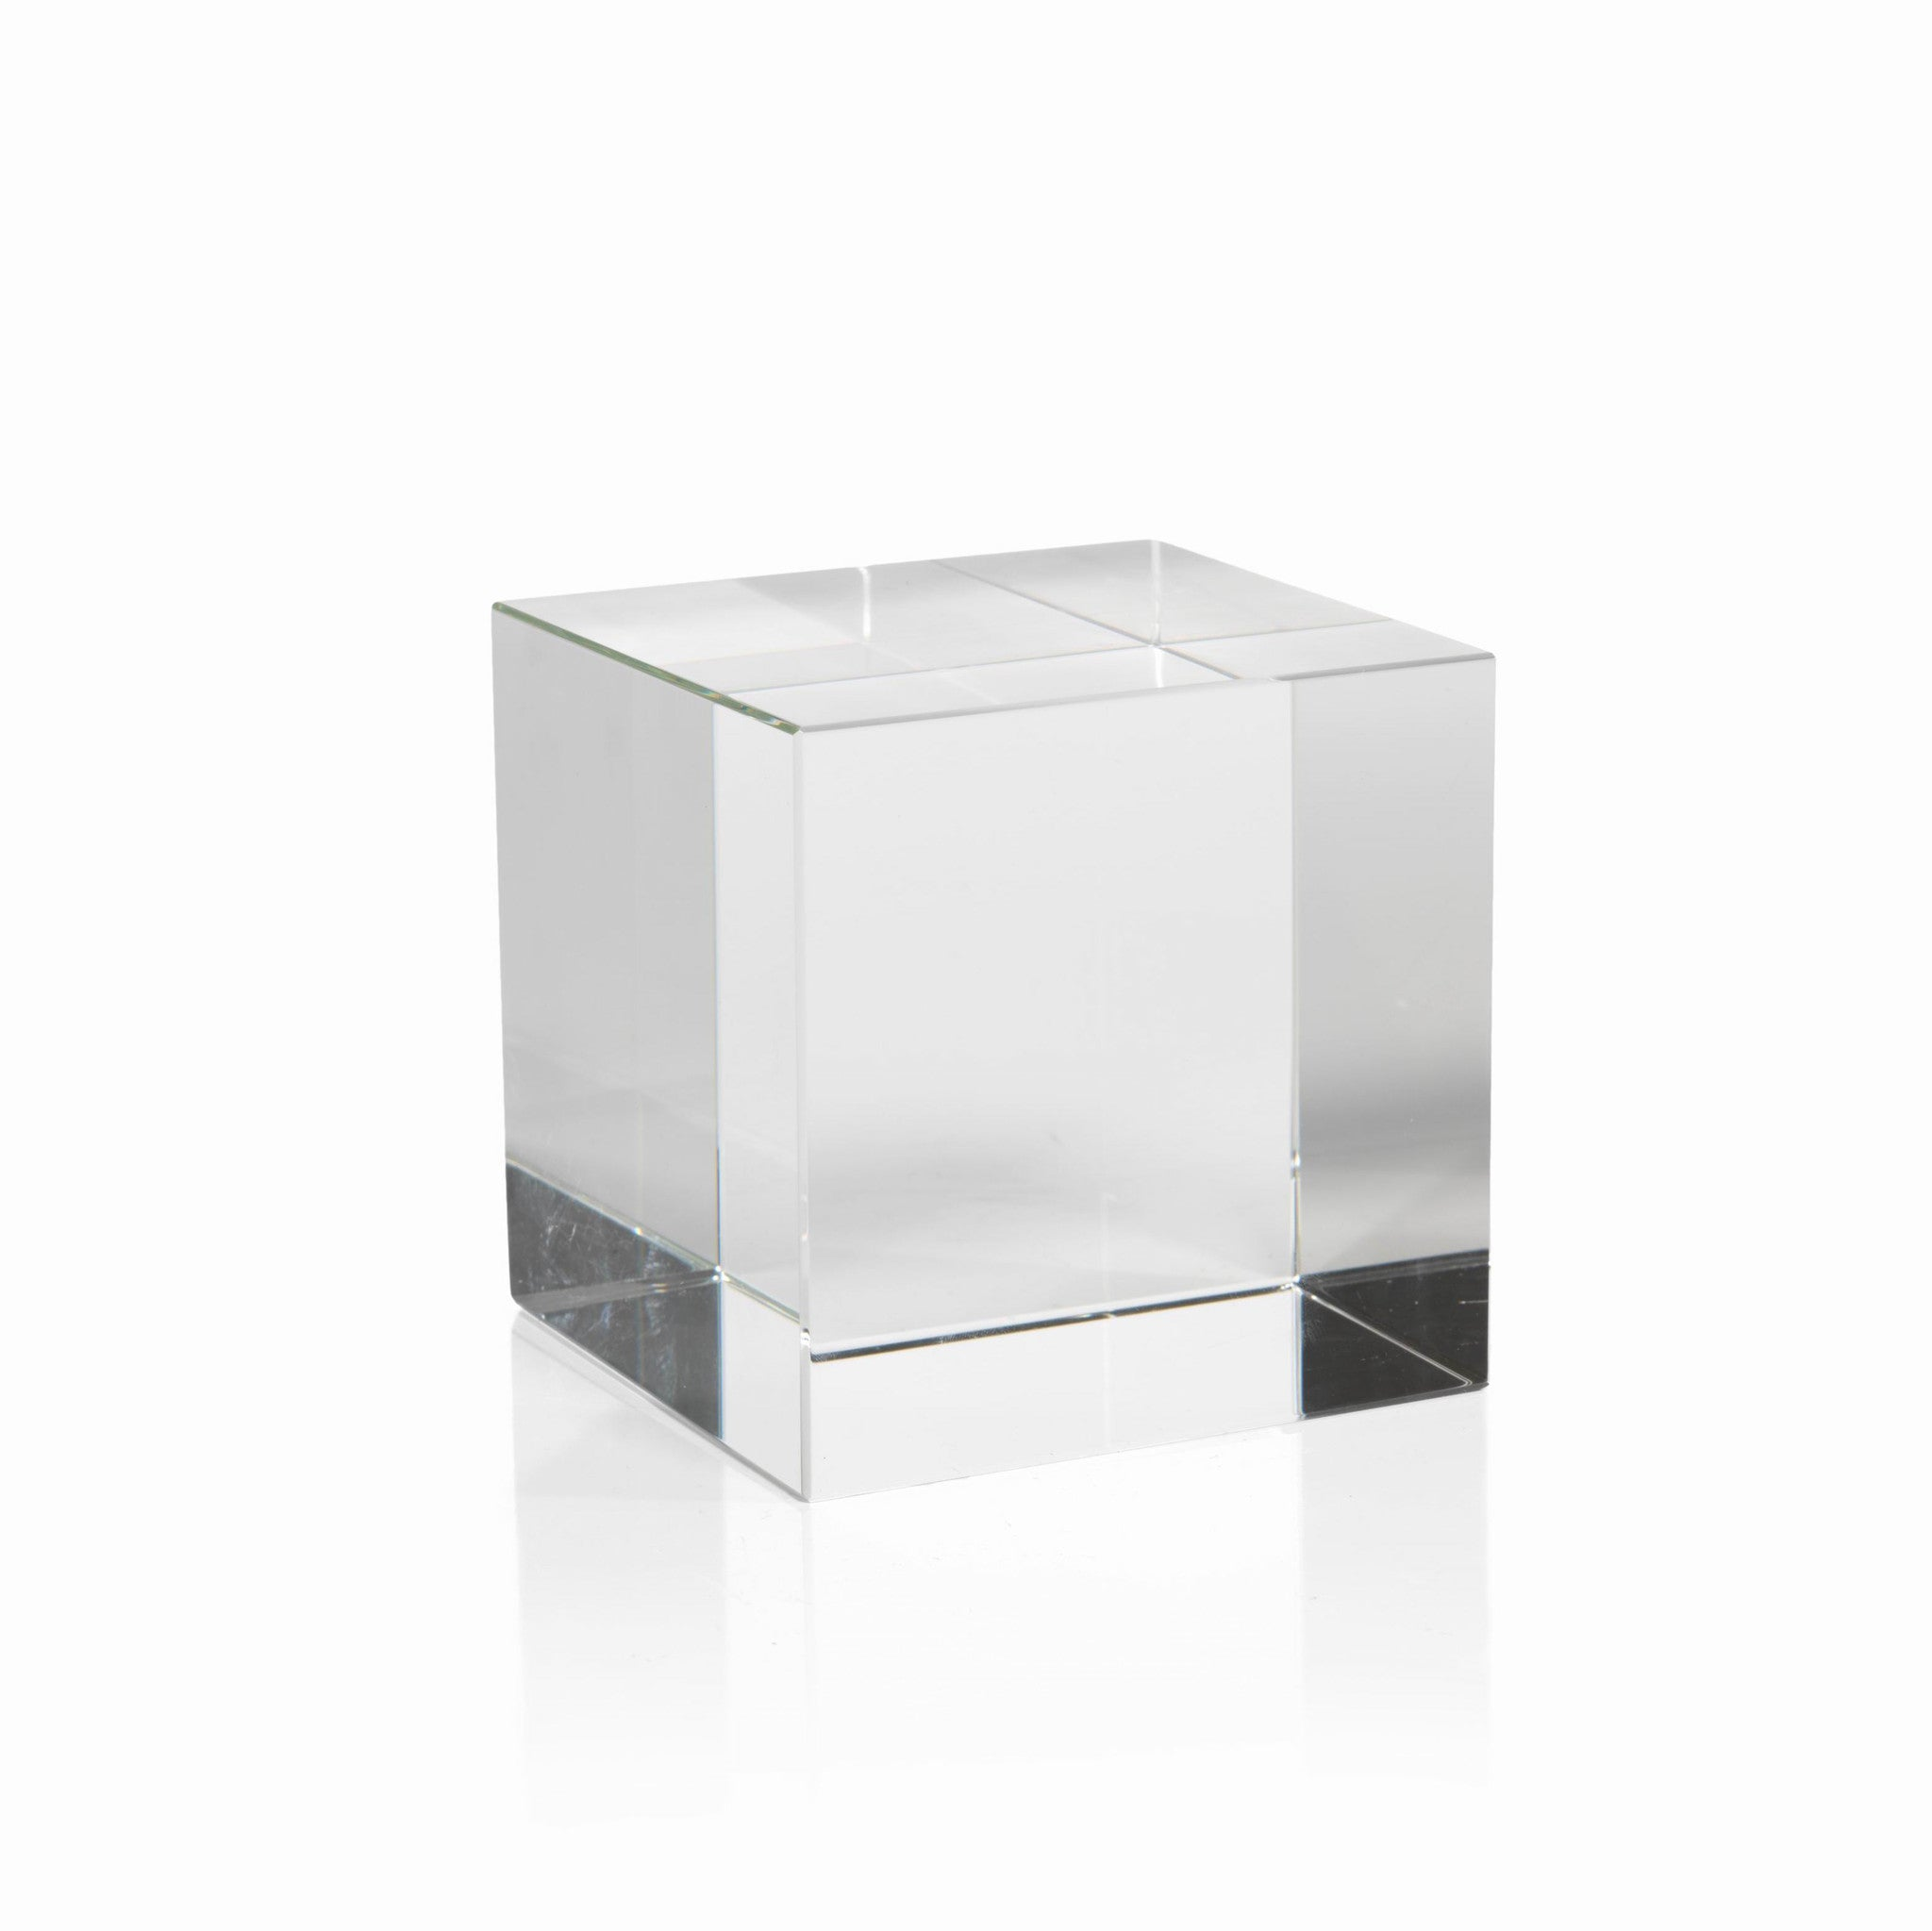 Crystal Glass Cube - CARLYLE AVENUE